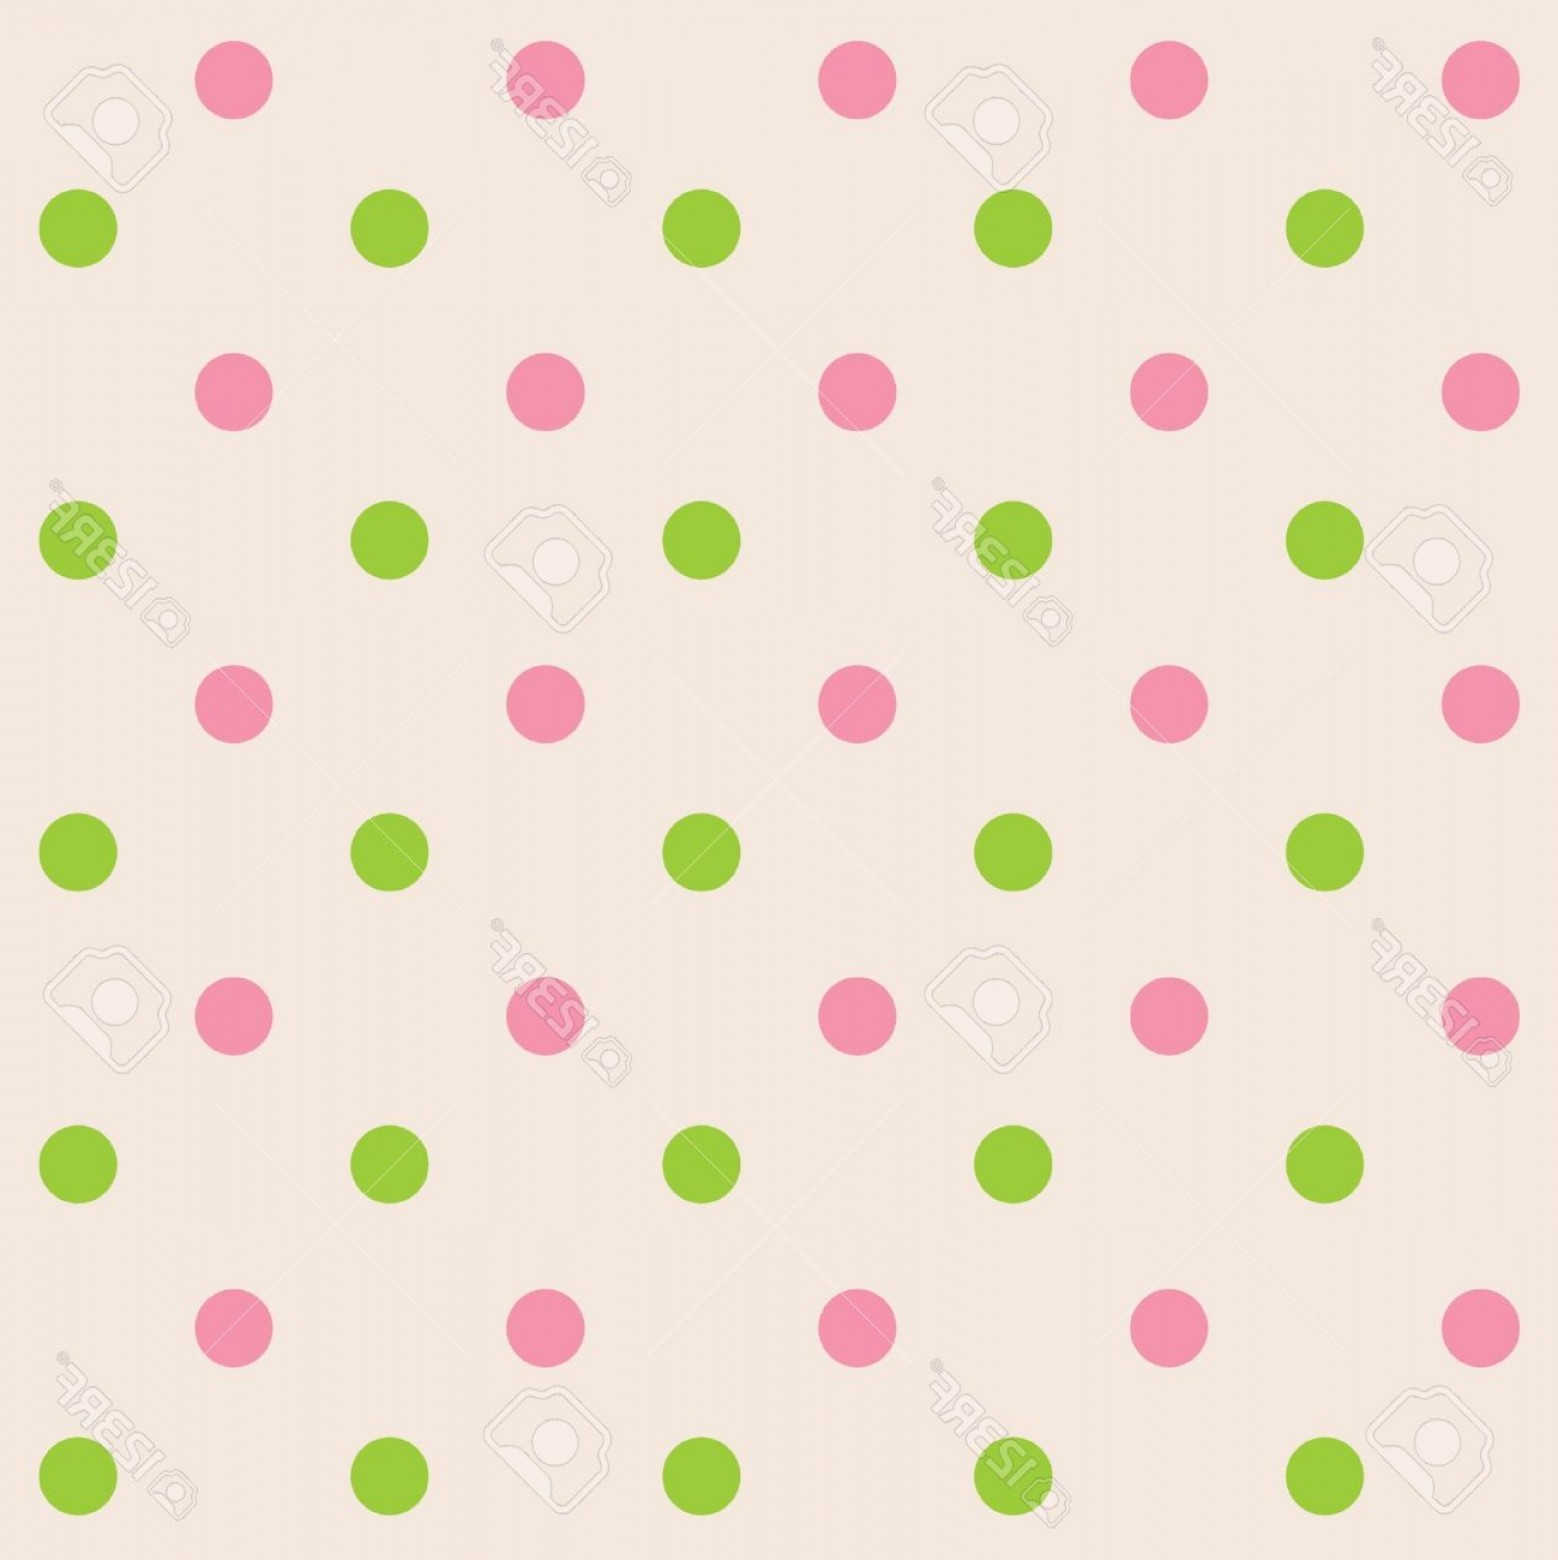 Polka Dot Background Vector Y: Photodots Cream Pink Green Seamless Pattern